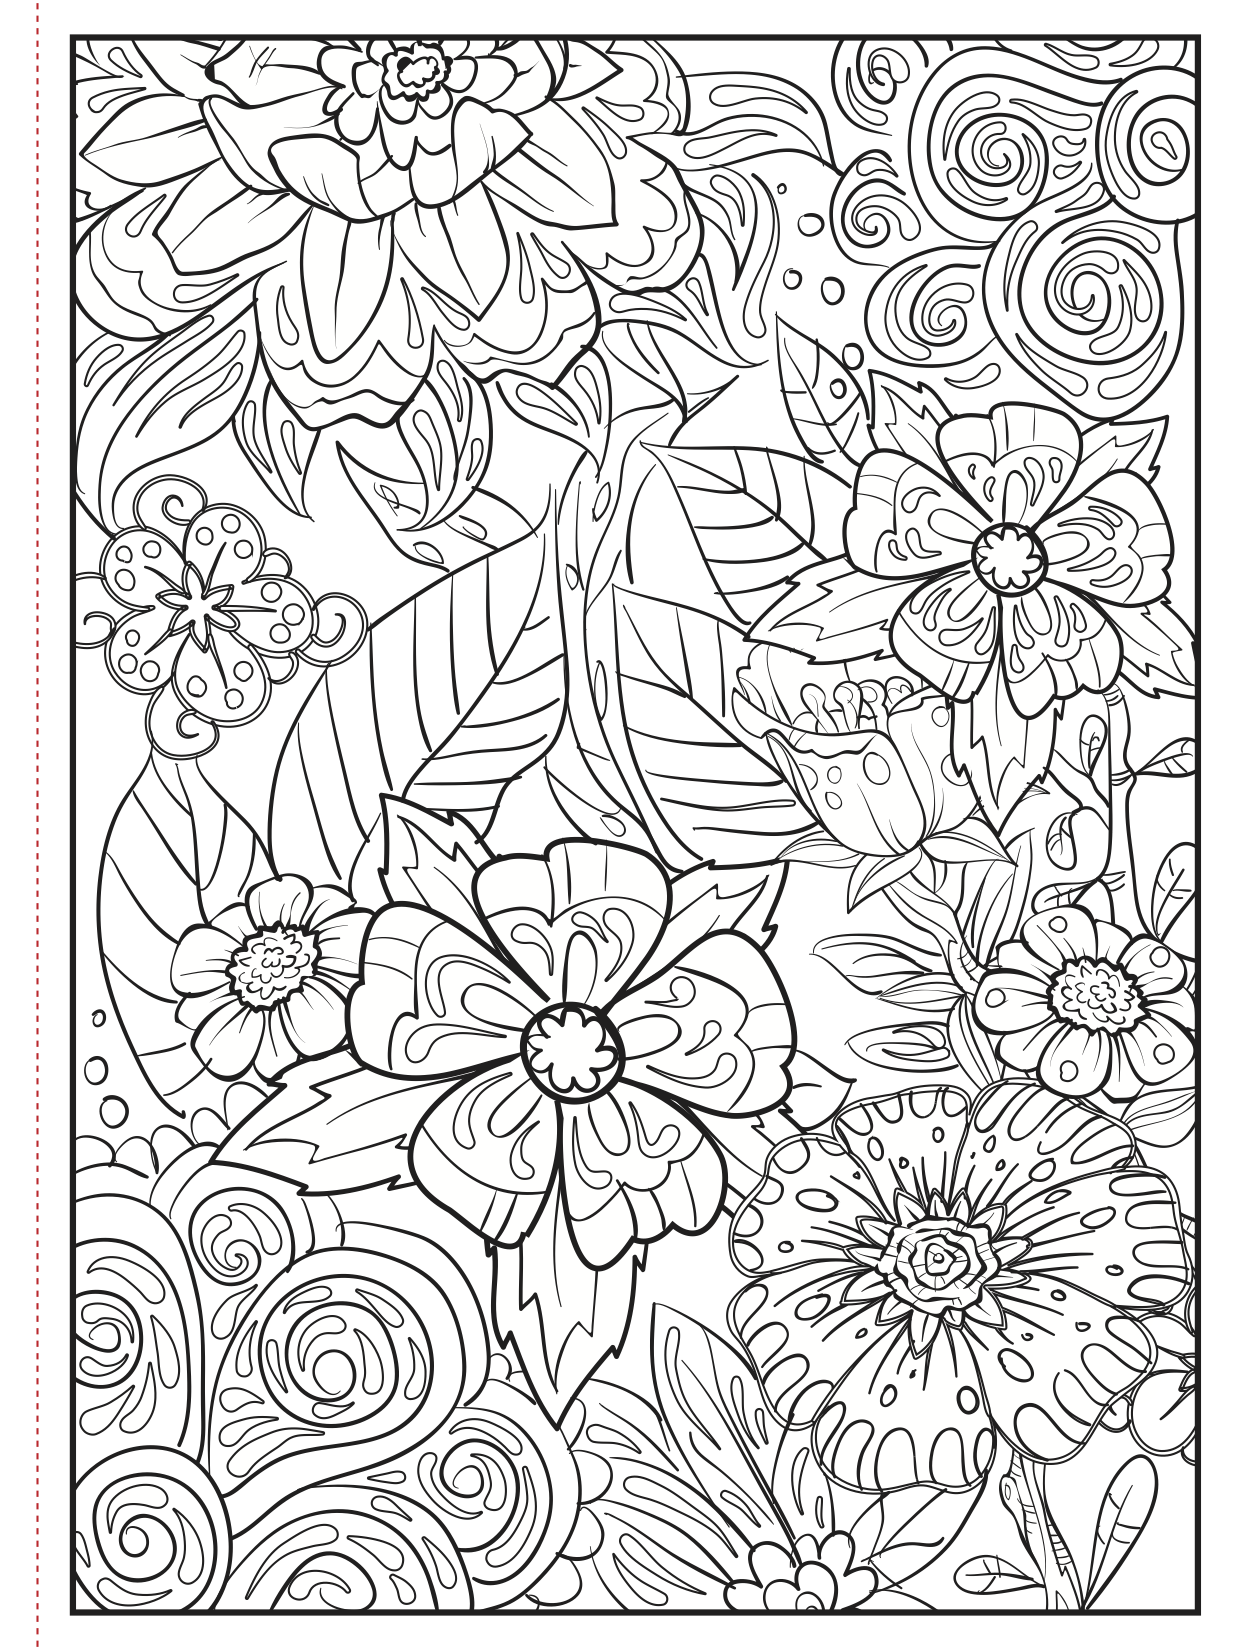 Choose From A Variety Of Free Coloring Pages From Our Coloring Book Colors In Bloom Freeprin Cute Coloring Pages Abstract Coloring Pages Cool Coloring Pages